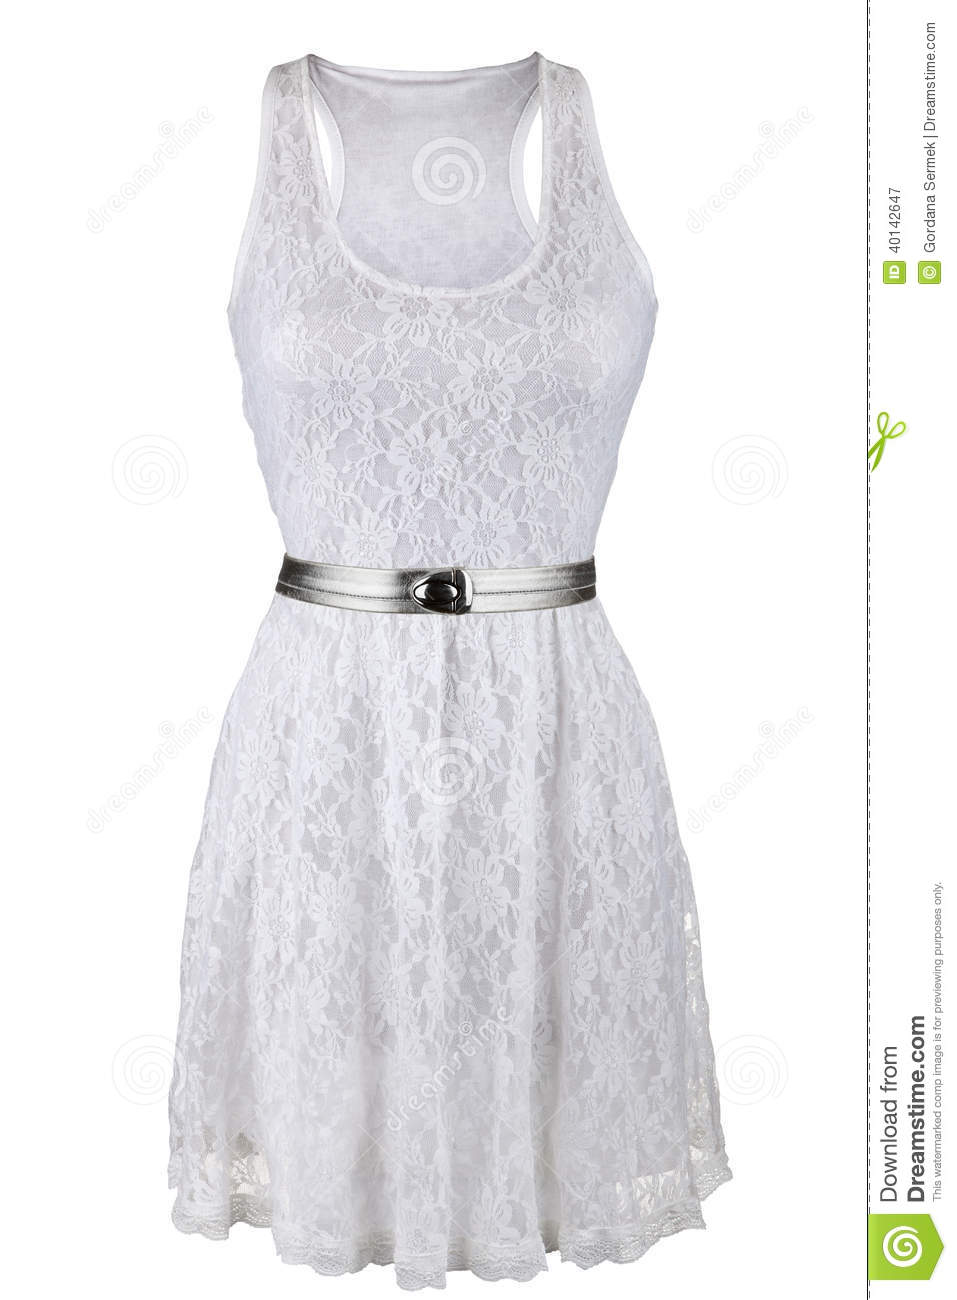 white lace dress with silver belt stock photo image